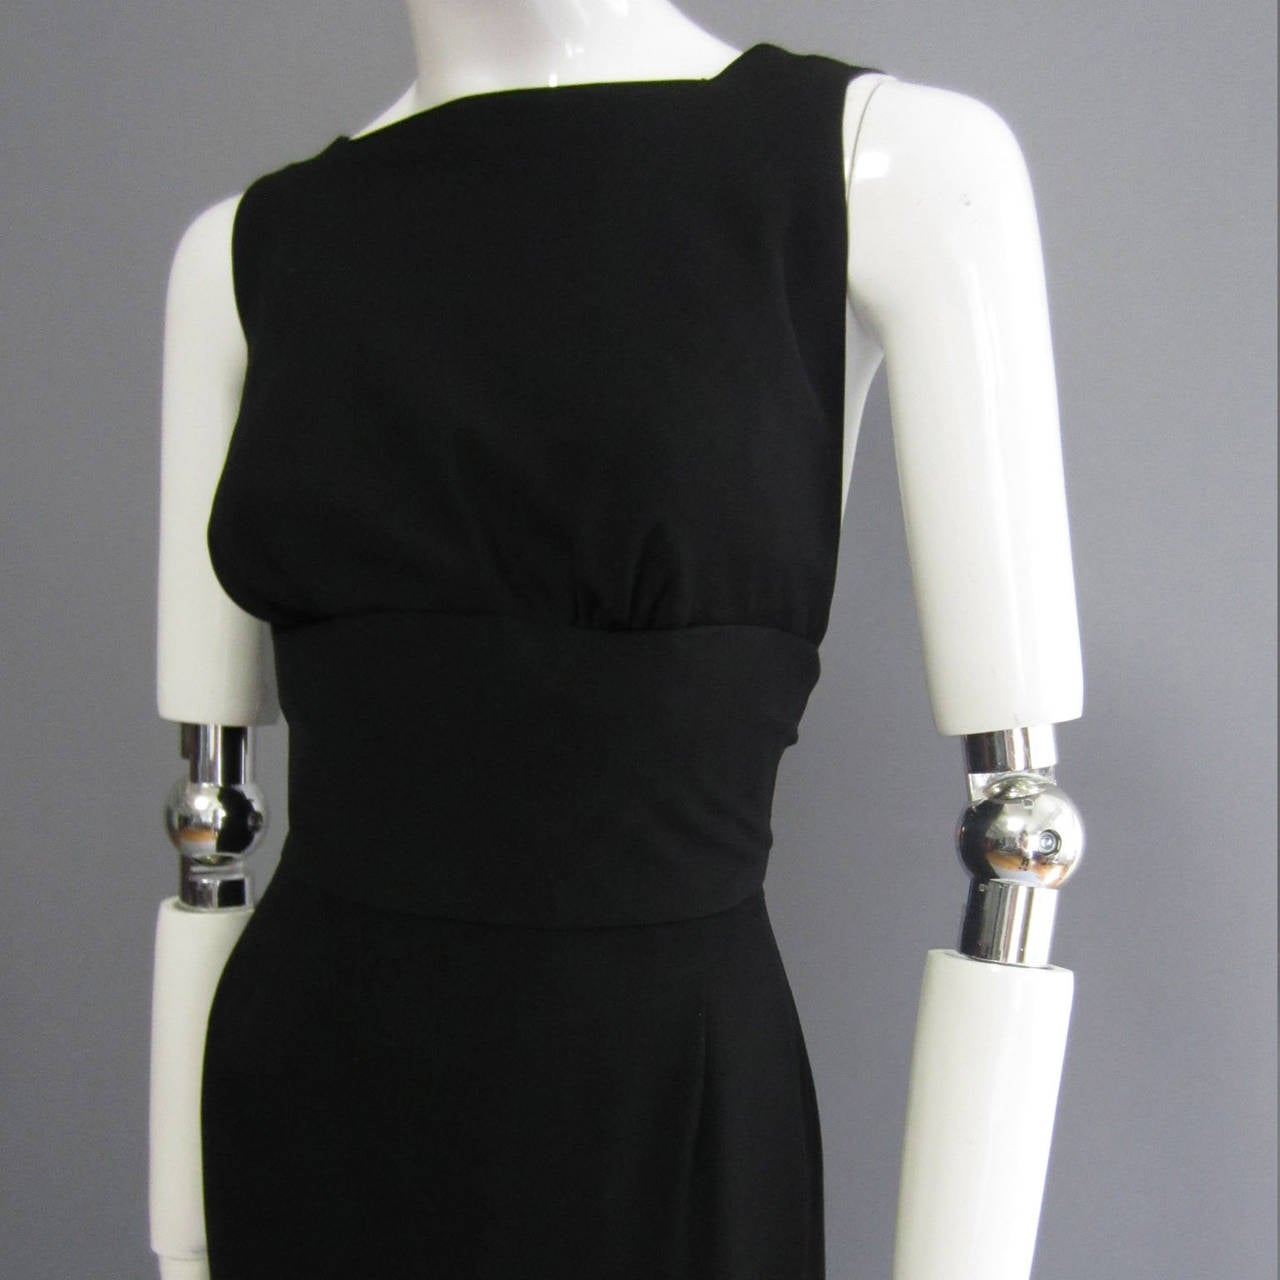 NORMAN NORELL Black Column Evening Gown with Back Tie Detail In Excellent Condition For Sale In New York, NY